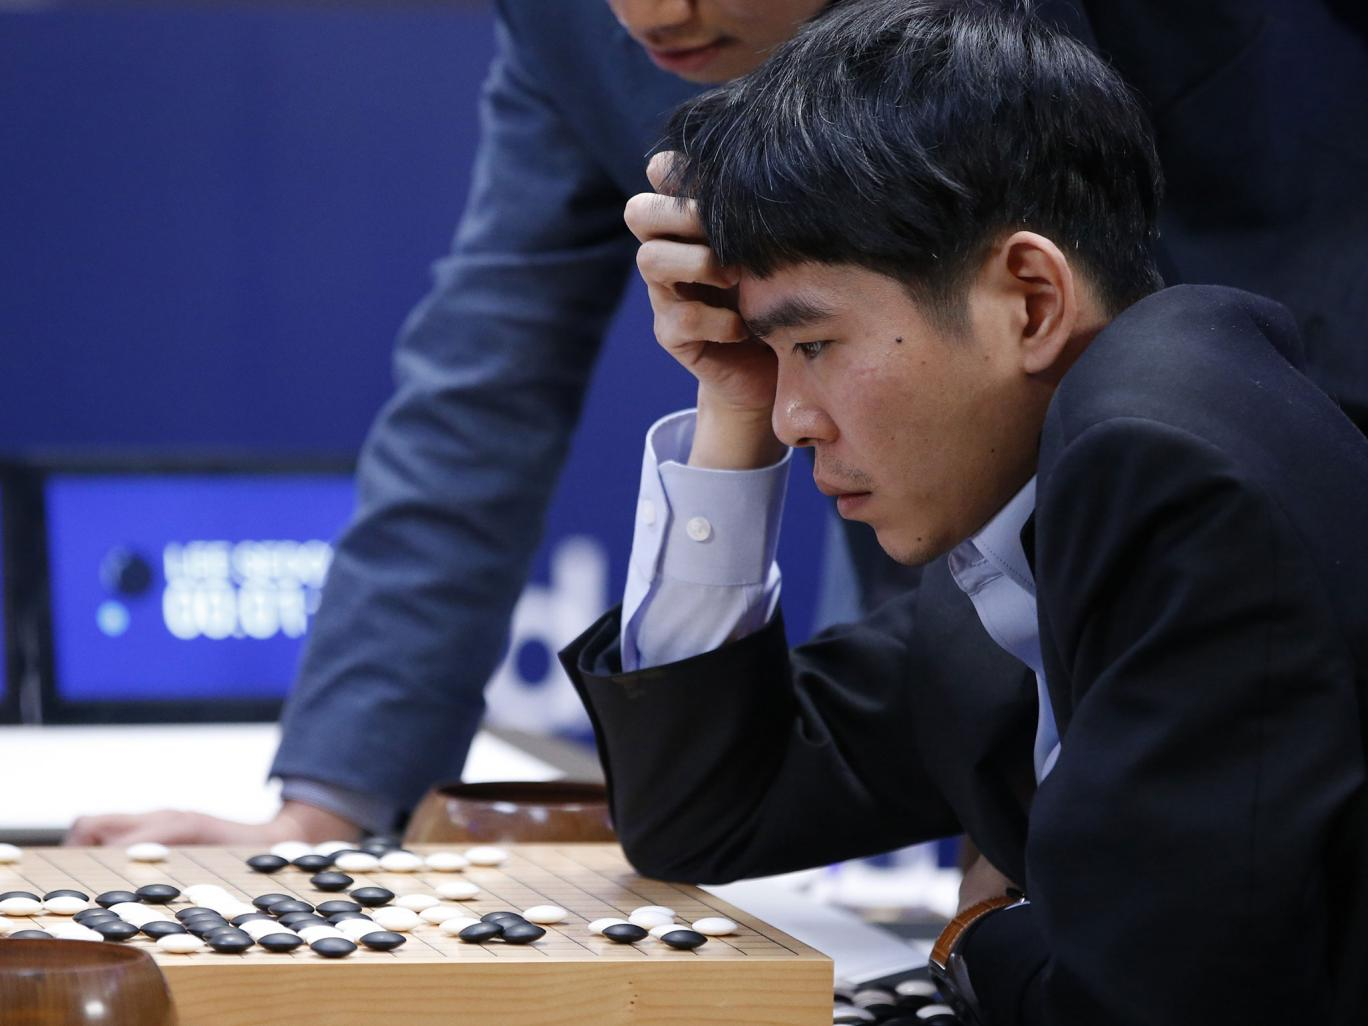 AlphaGo vs Lee Sedol 3